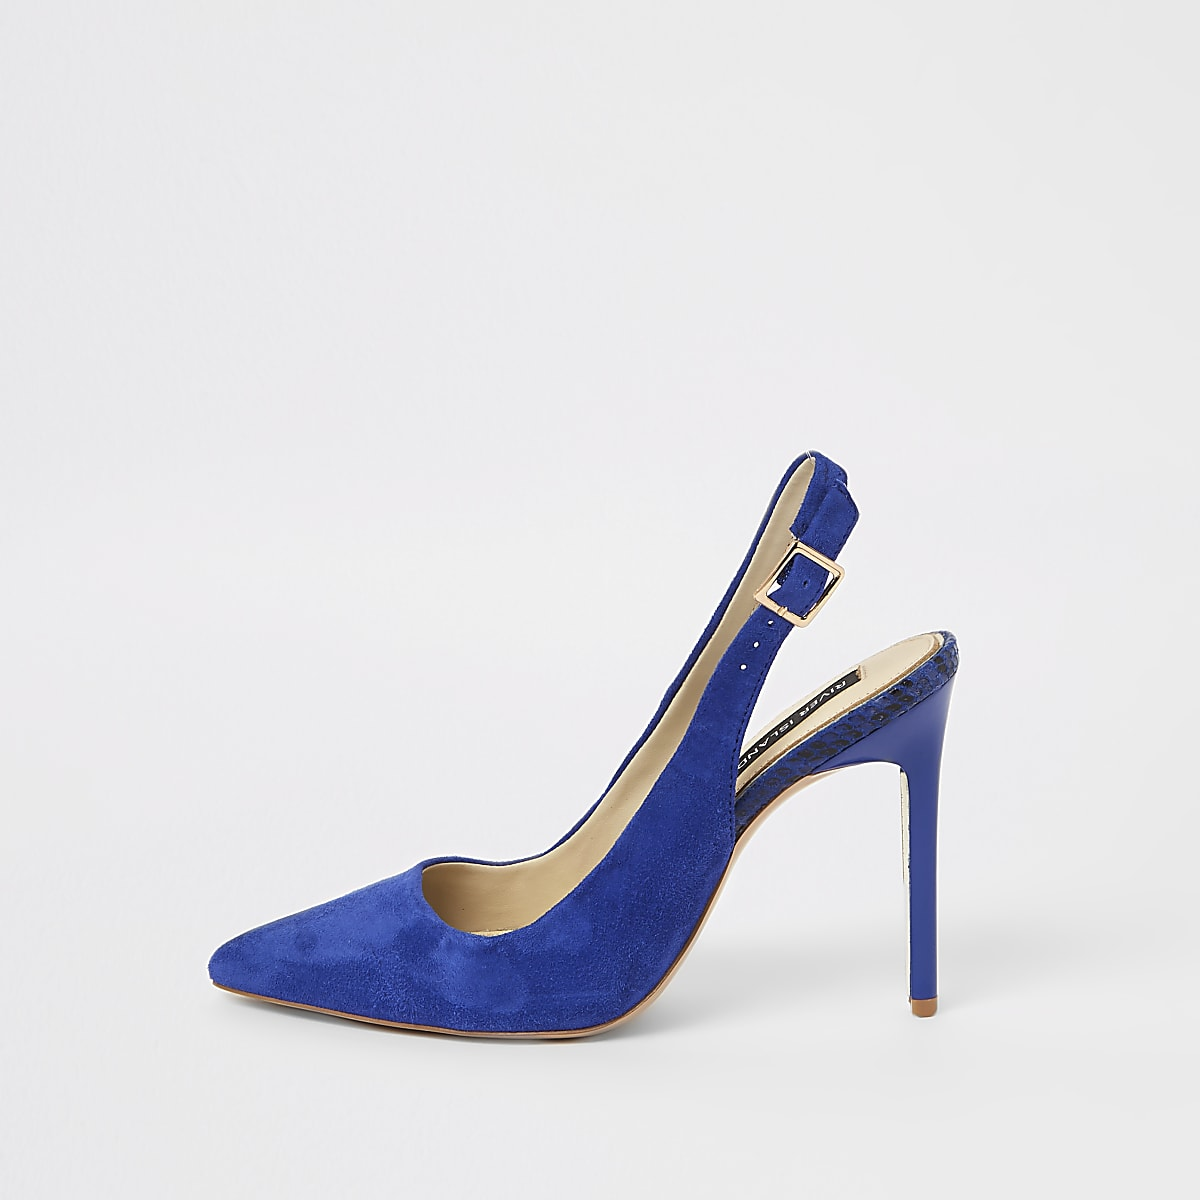 795a87c93a3 Blue pointed toe slingback pumps Blue pointed toe slingback pumps ...